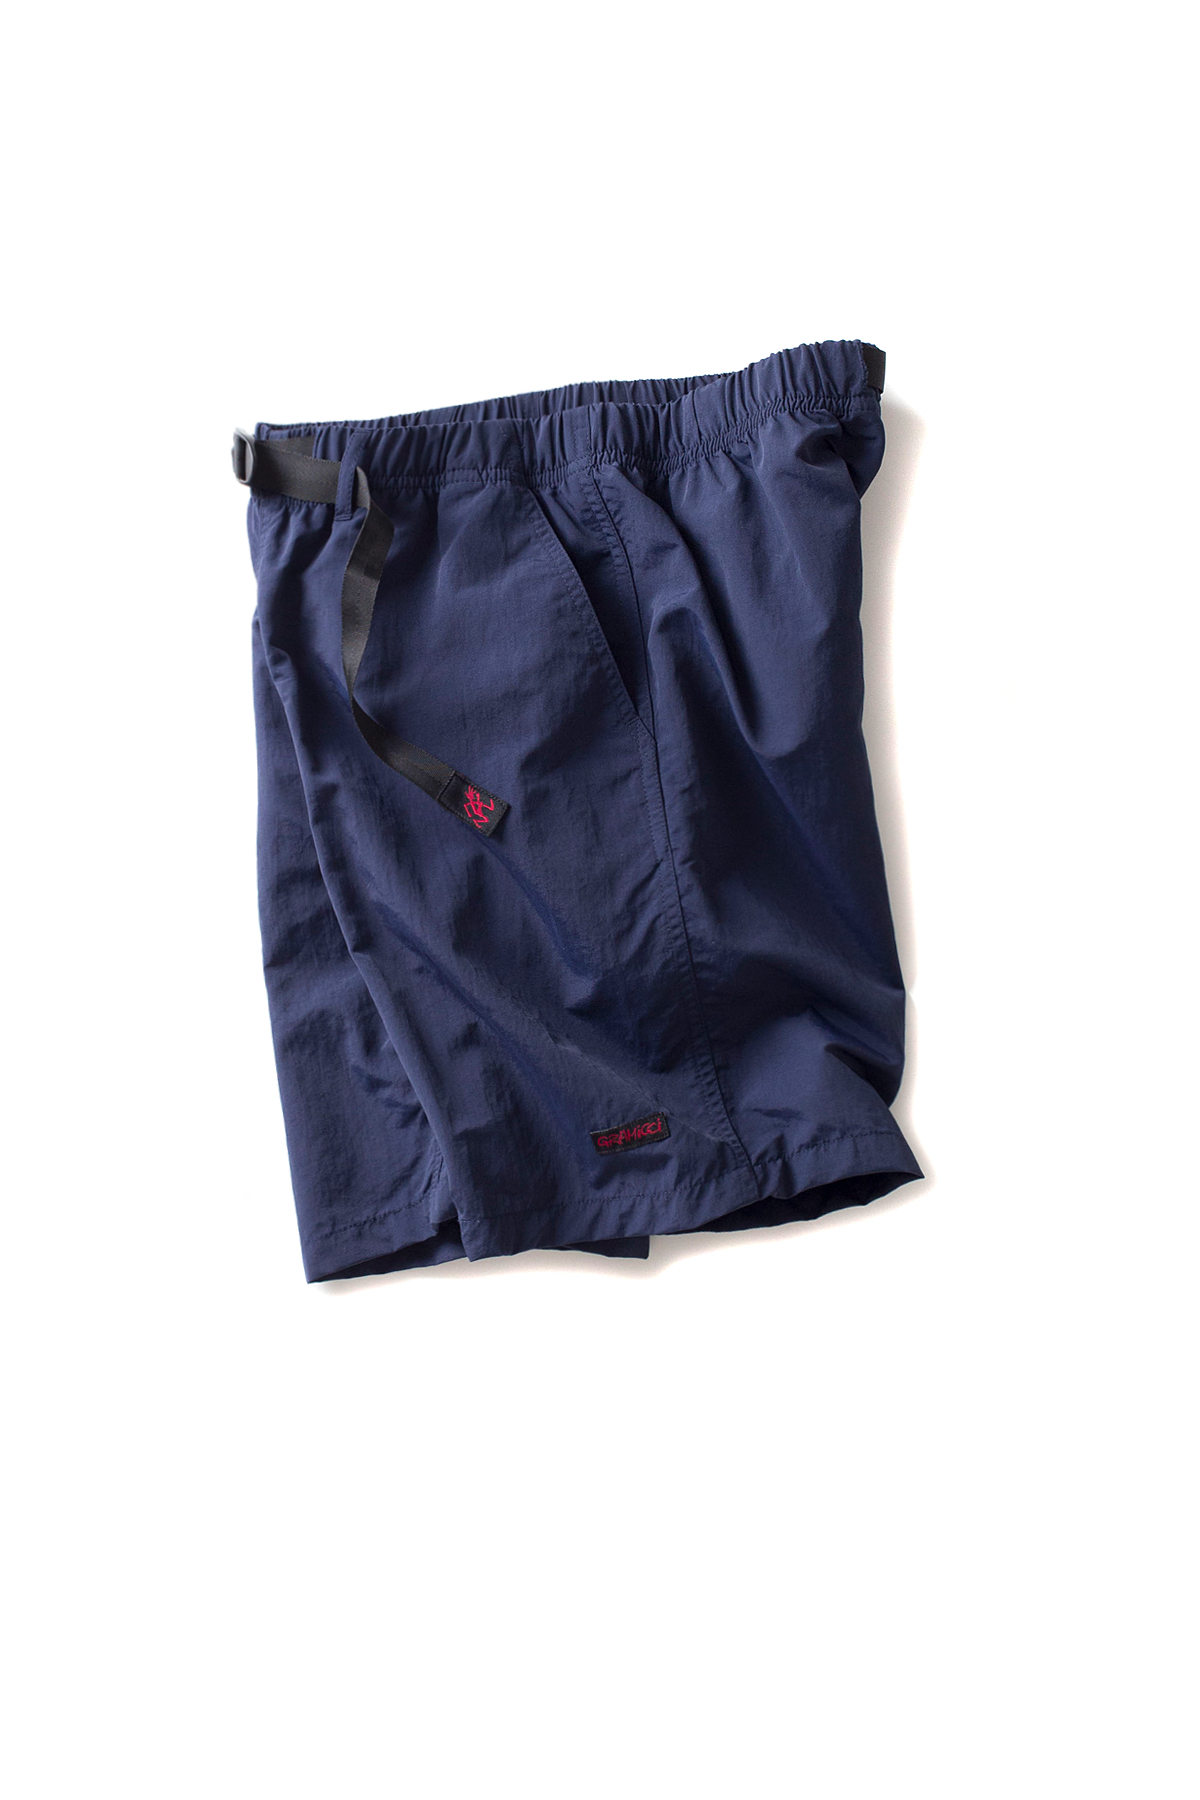 Gramicci : Packable Shorts (Navy)